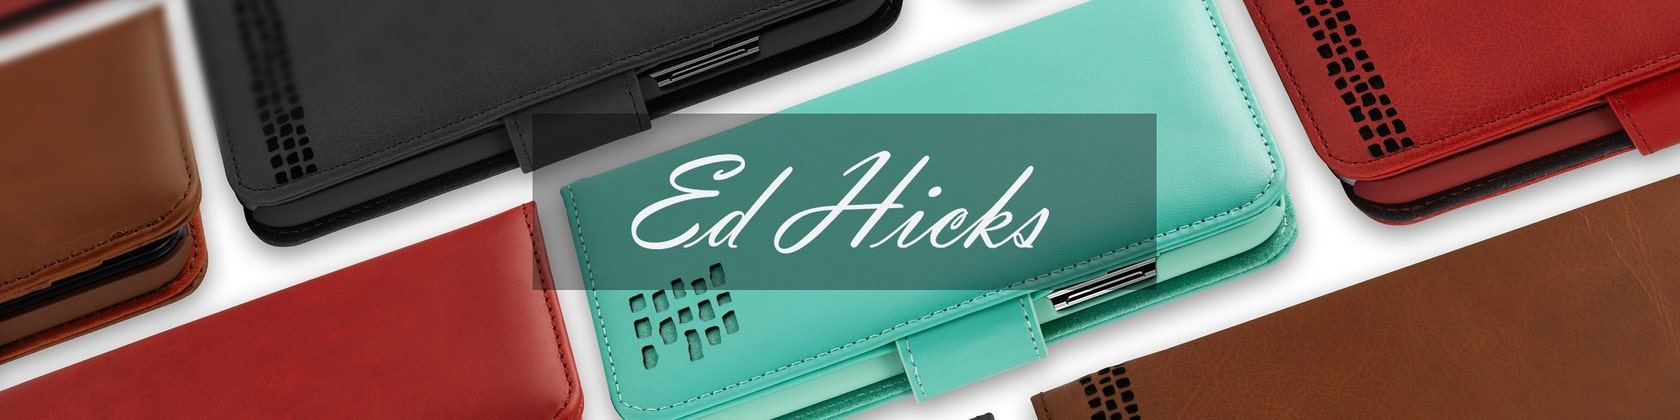 ed hicks iphone xr case